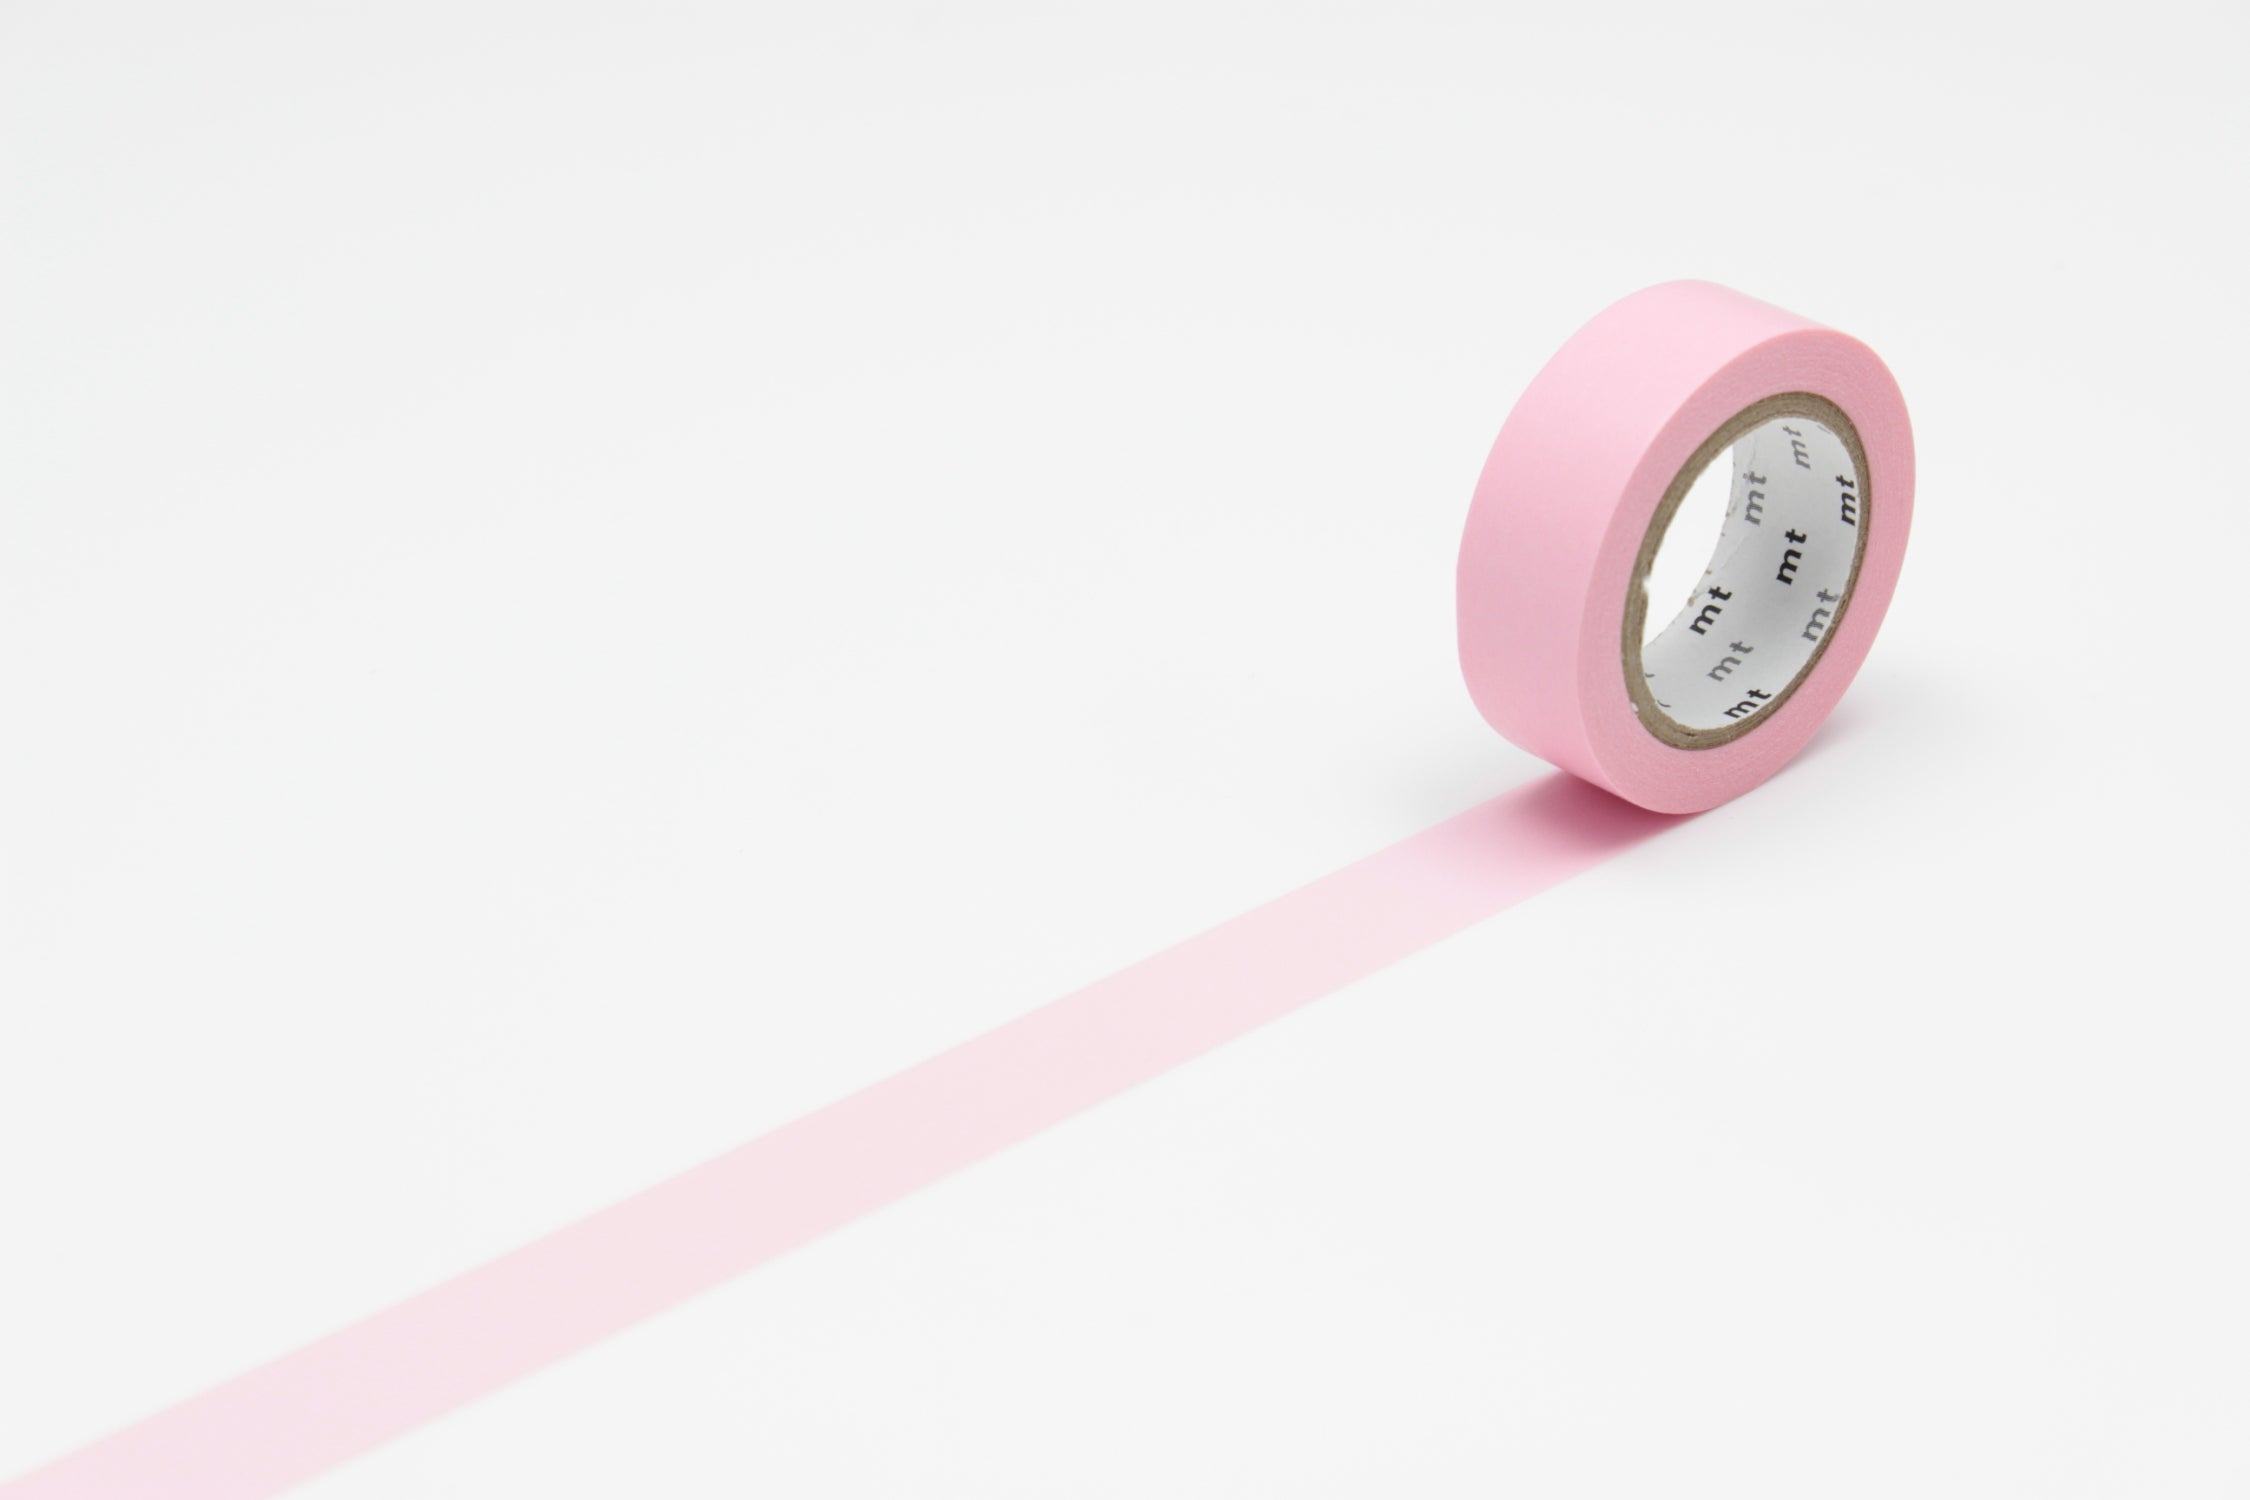 MT MASKING TAPE // PLAIN ROSE PINK